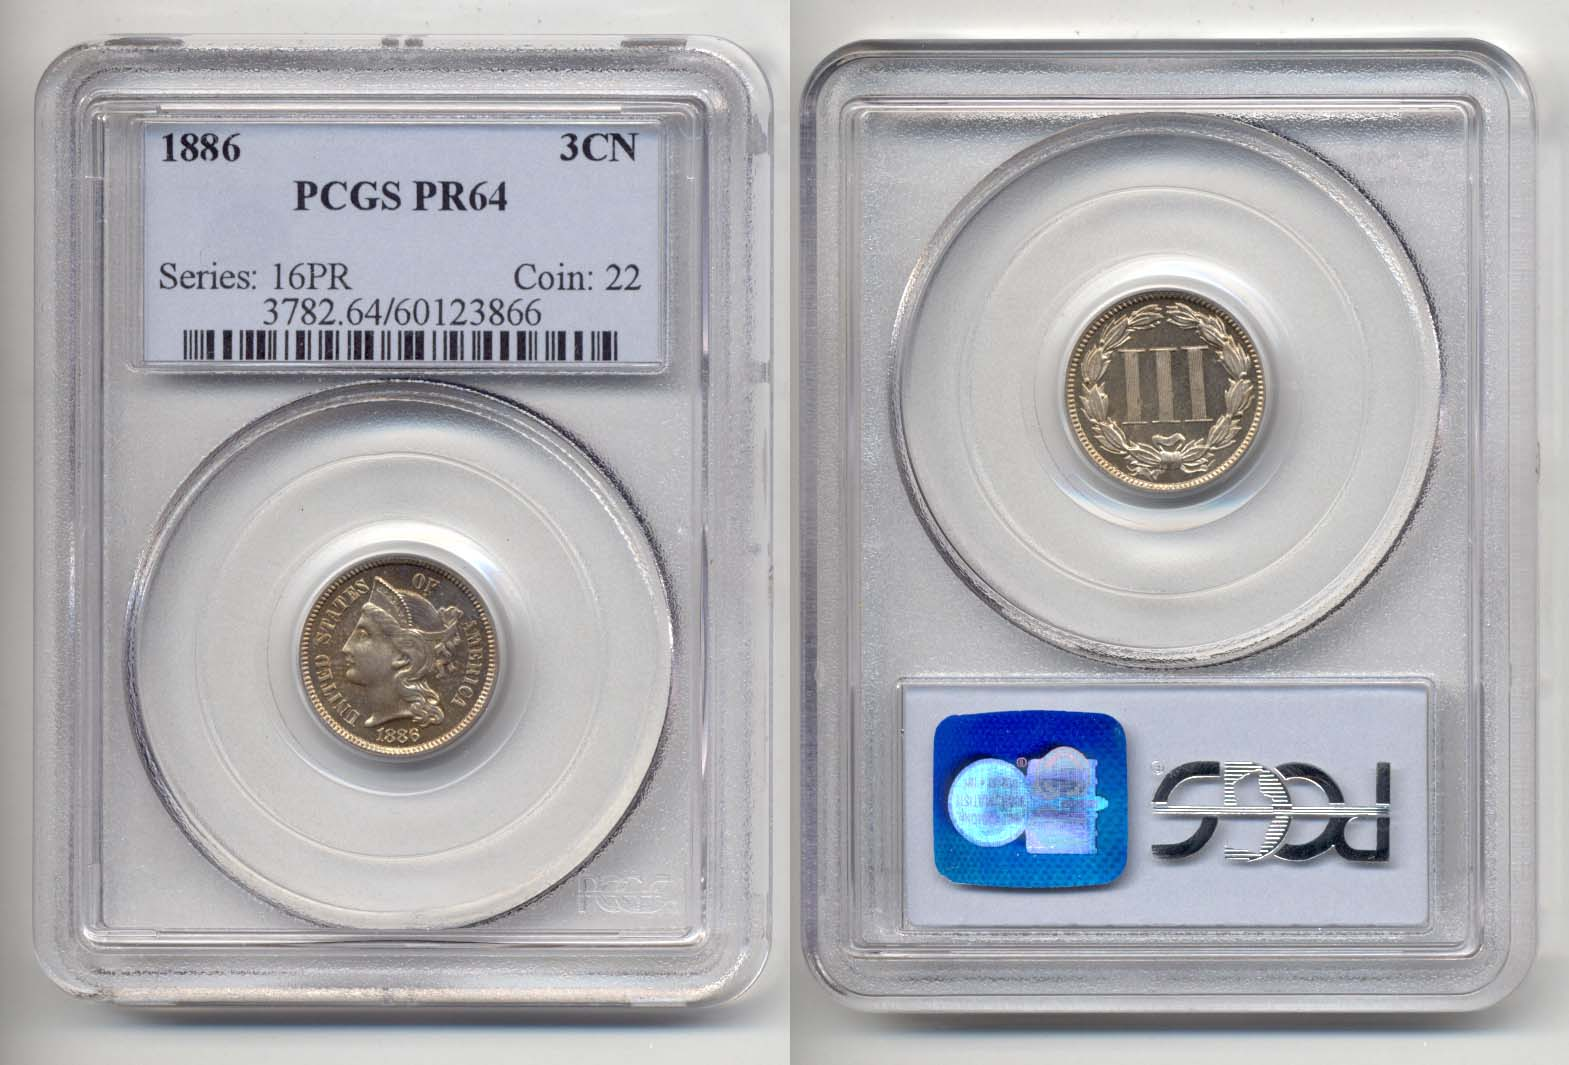 1886 Three Cent Nickel in PCGS Proof-64